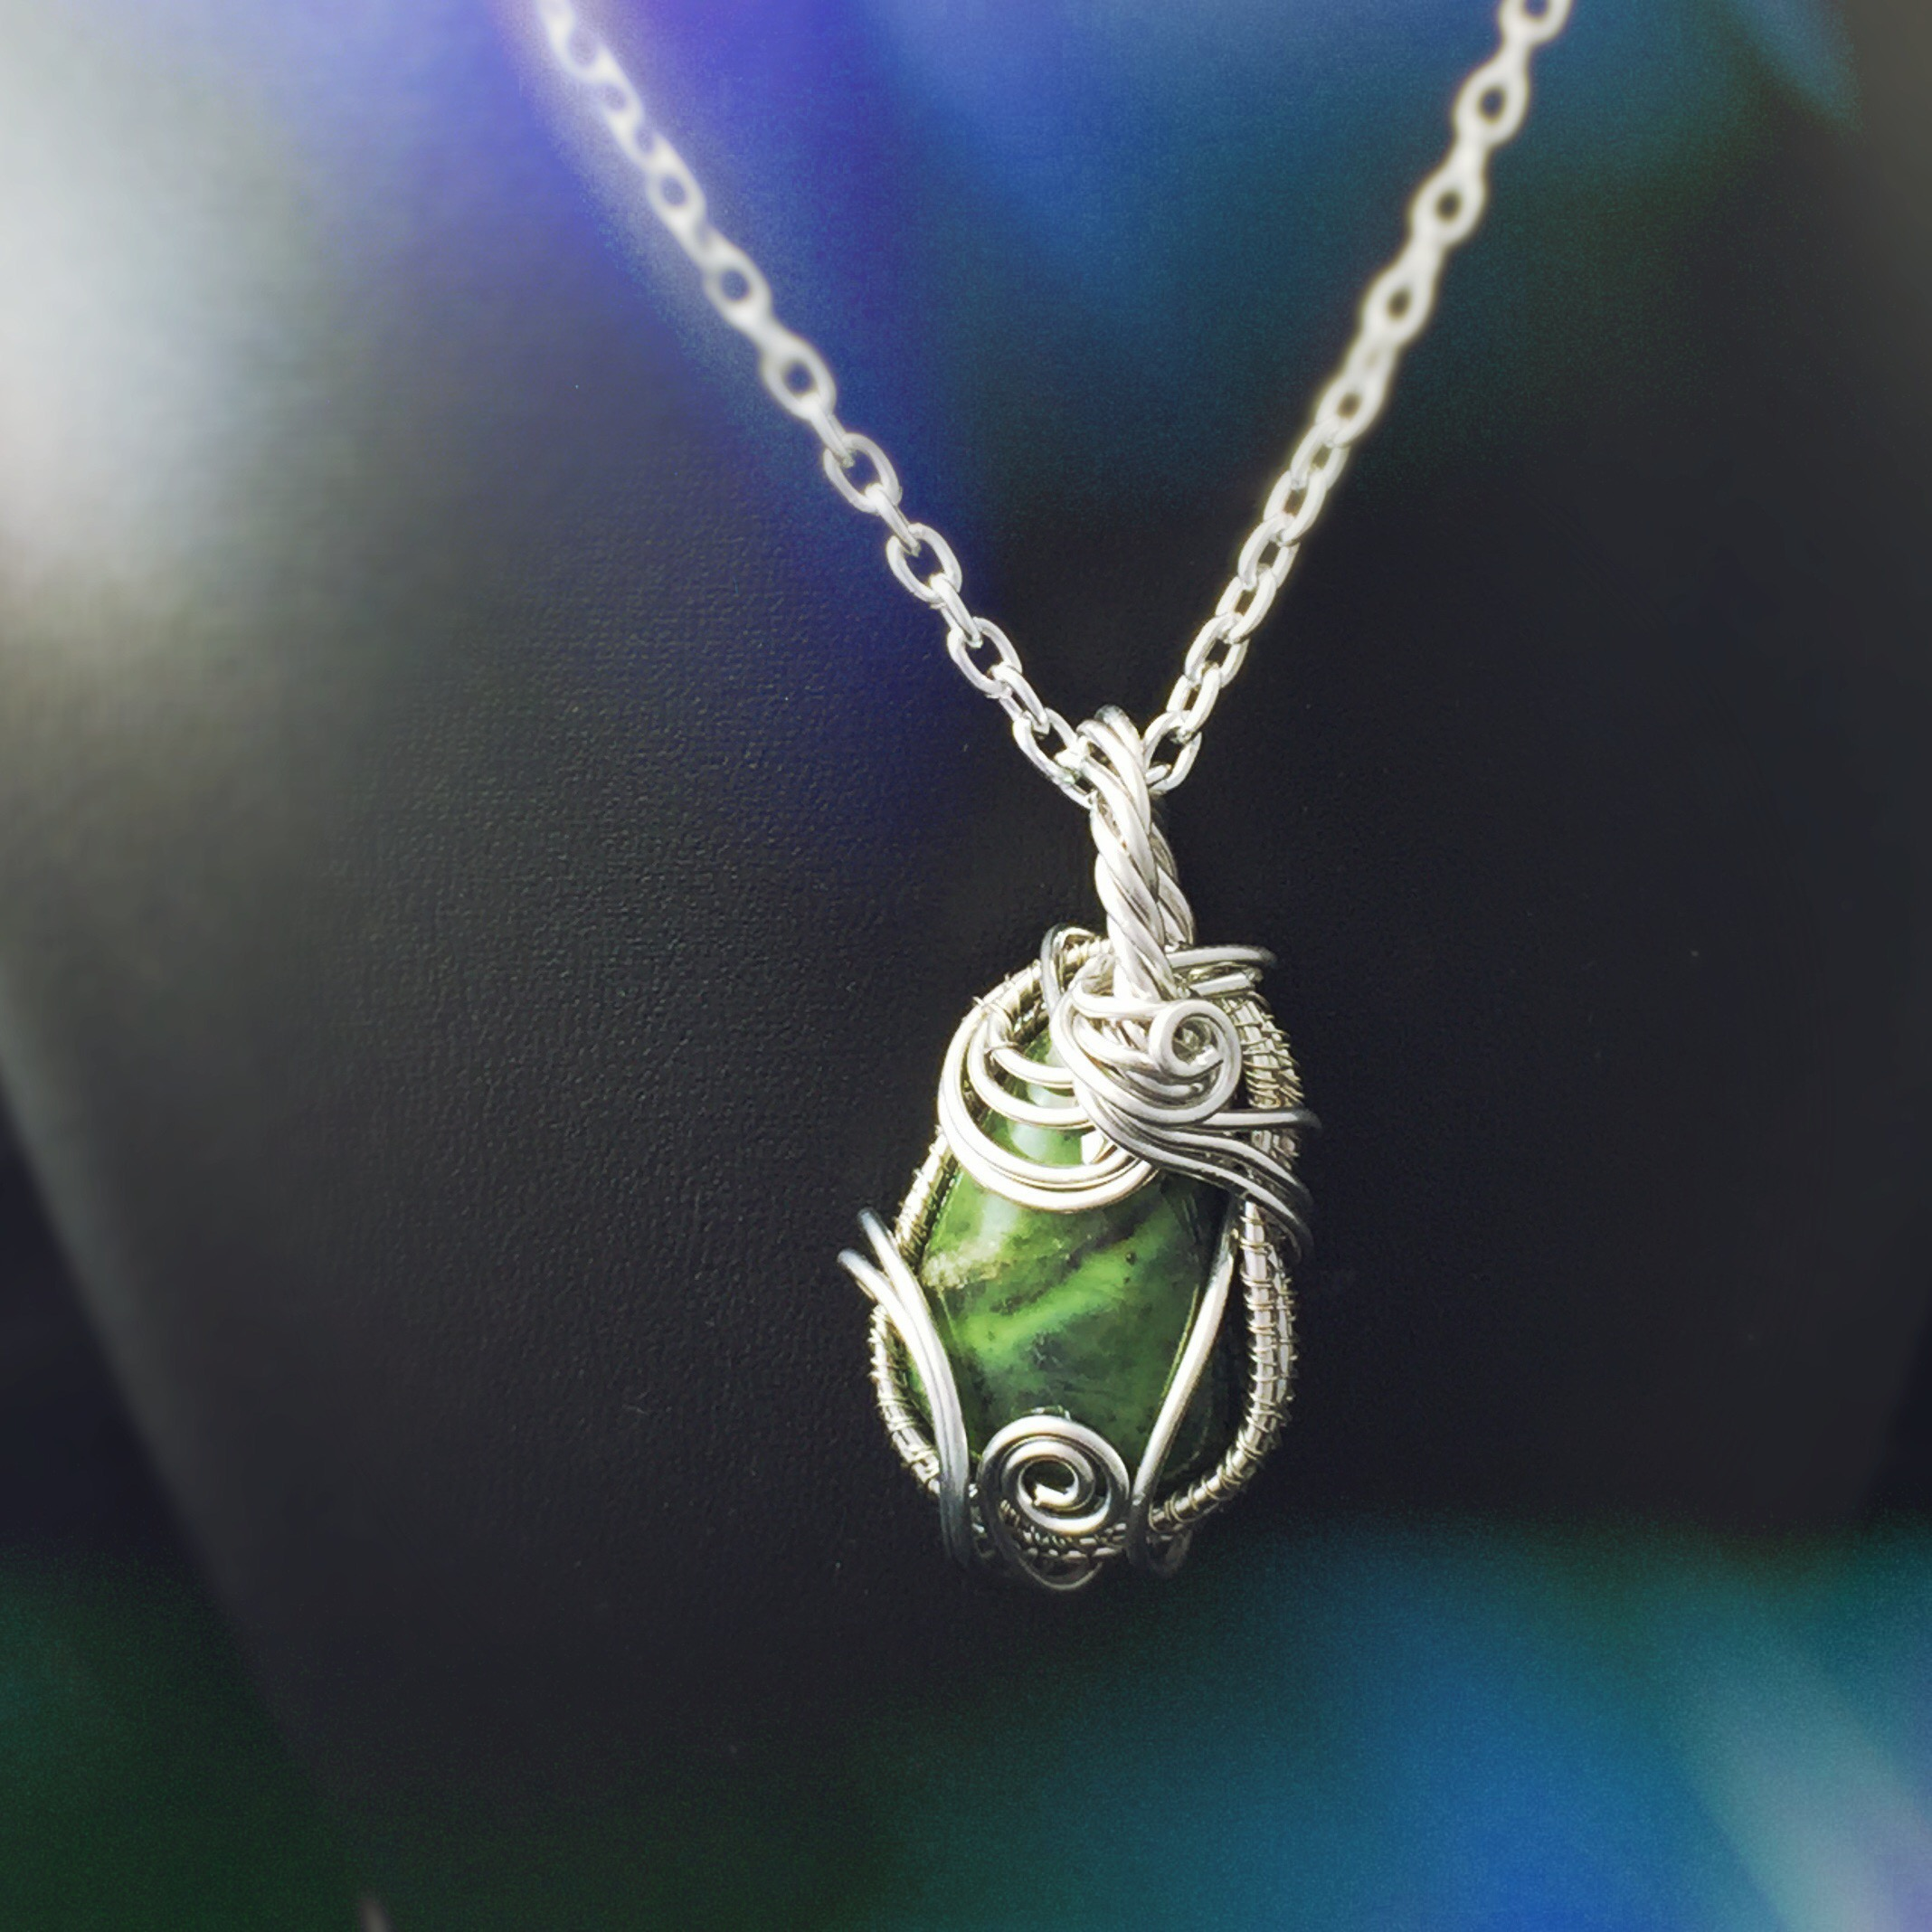 Ground yourself, express yourself, and reach a spiritual realm with this  Serpentine,  Gemini!